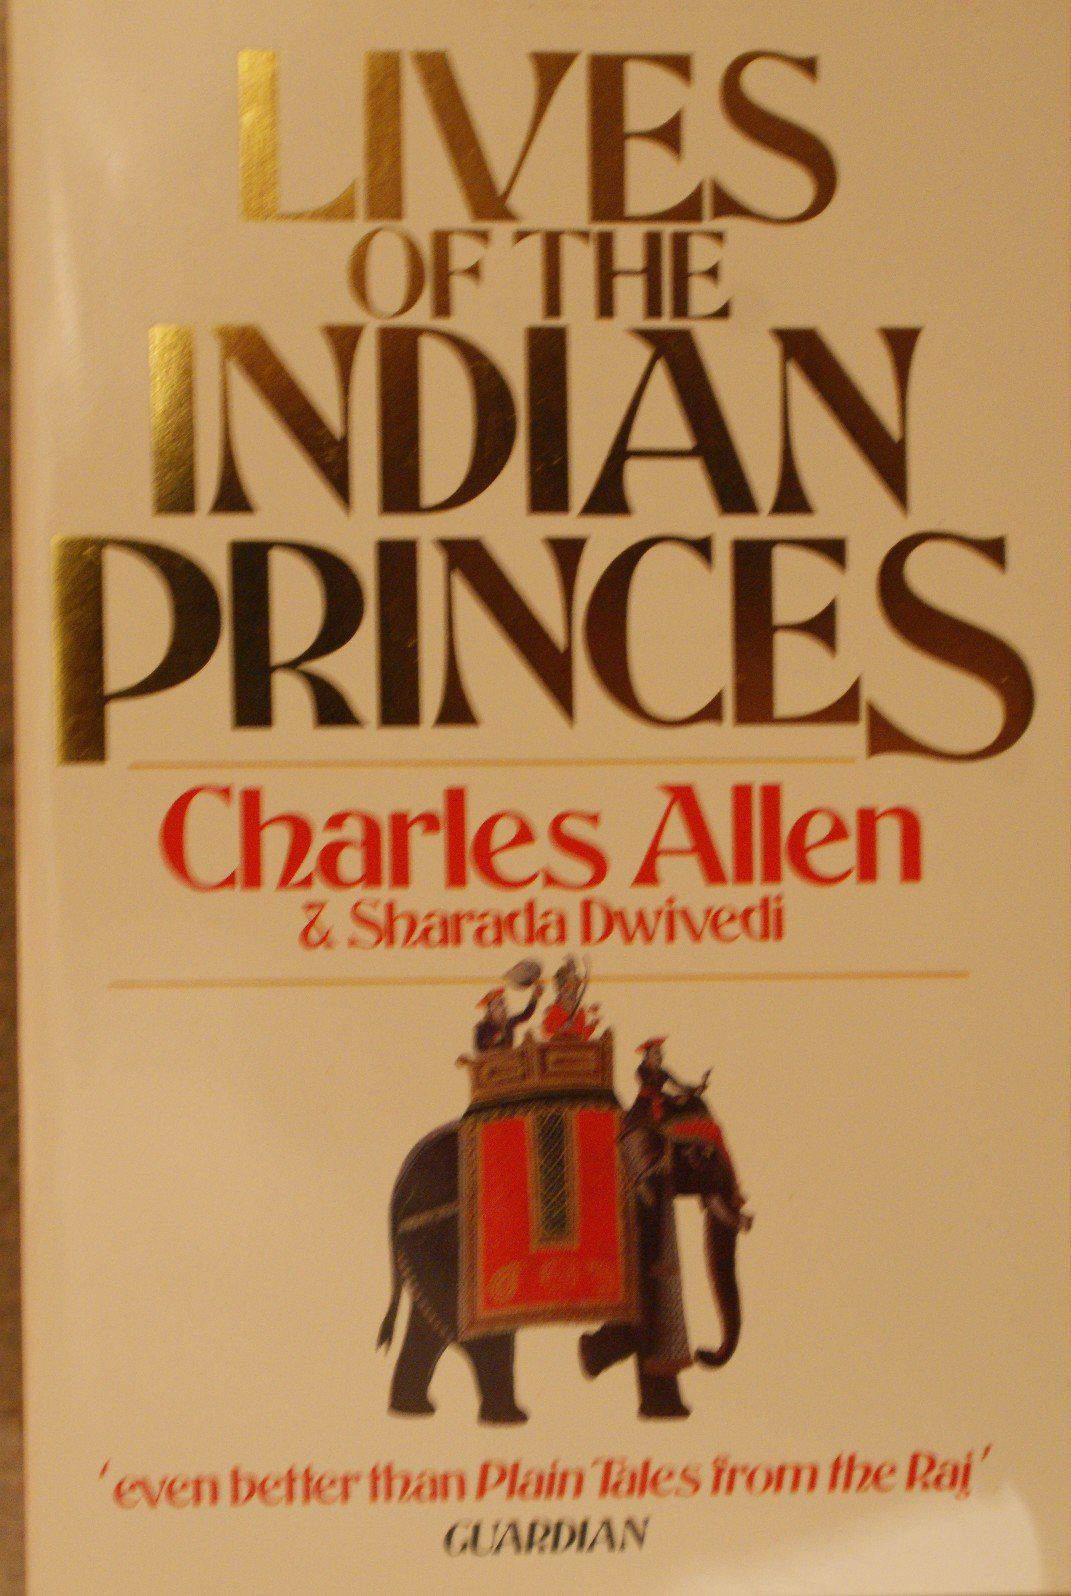 Lives of the Indian Princes Arena Books